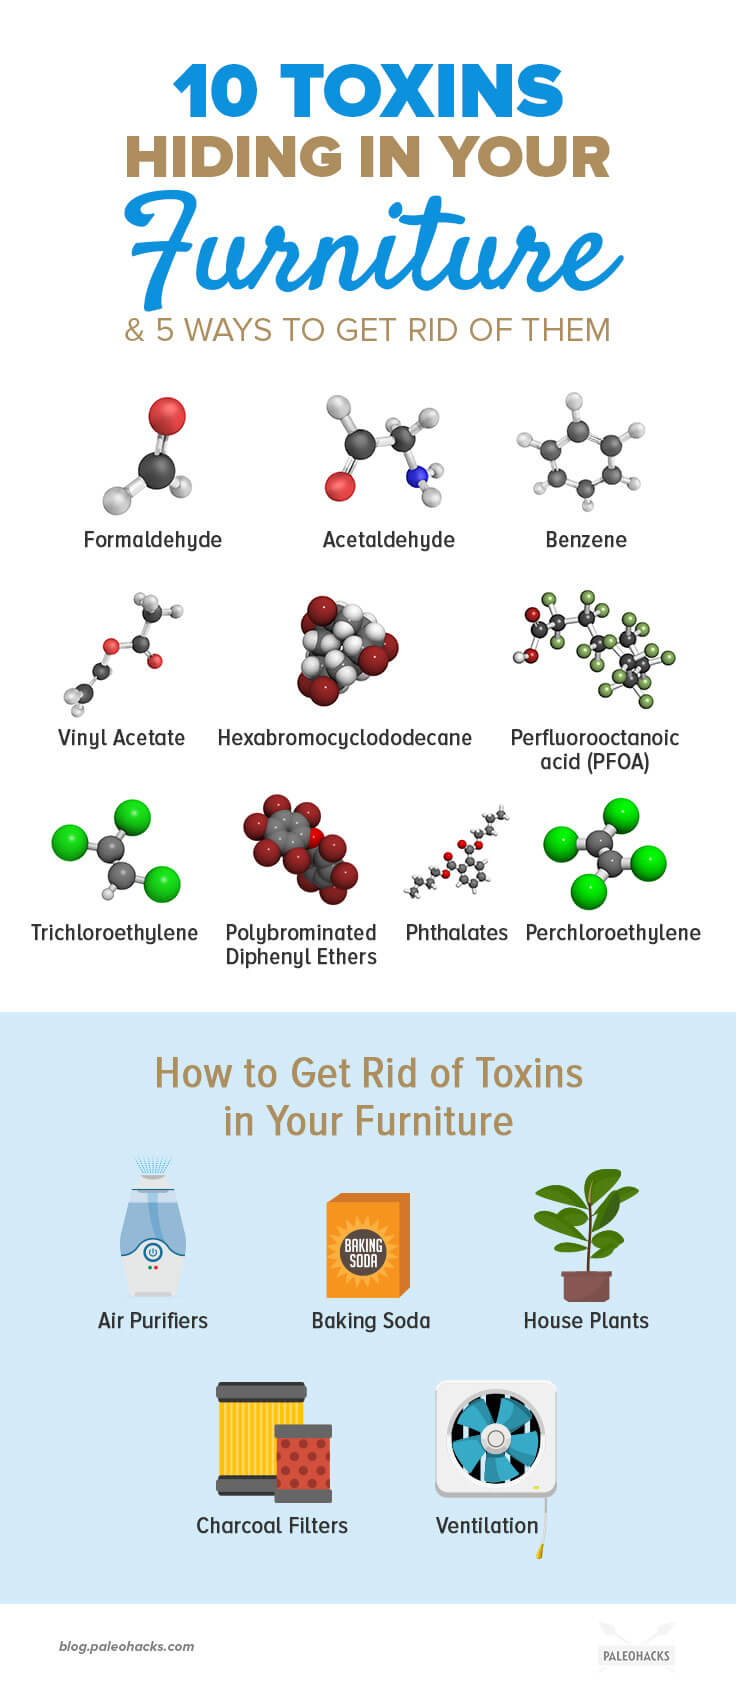 10-Toxins-Hiding-in-Your-Furniture-and-5-Ways-To-Get-Rid-Of-Them-infog-1.jpg